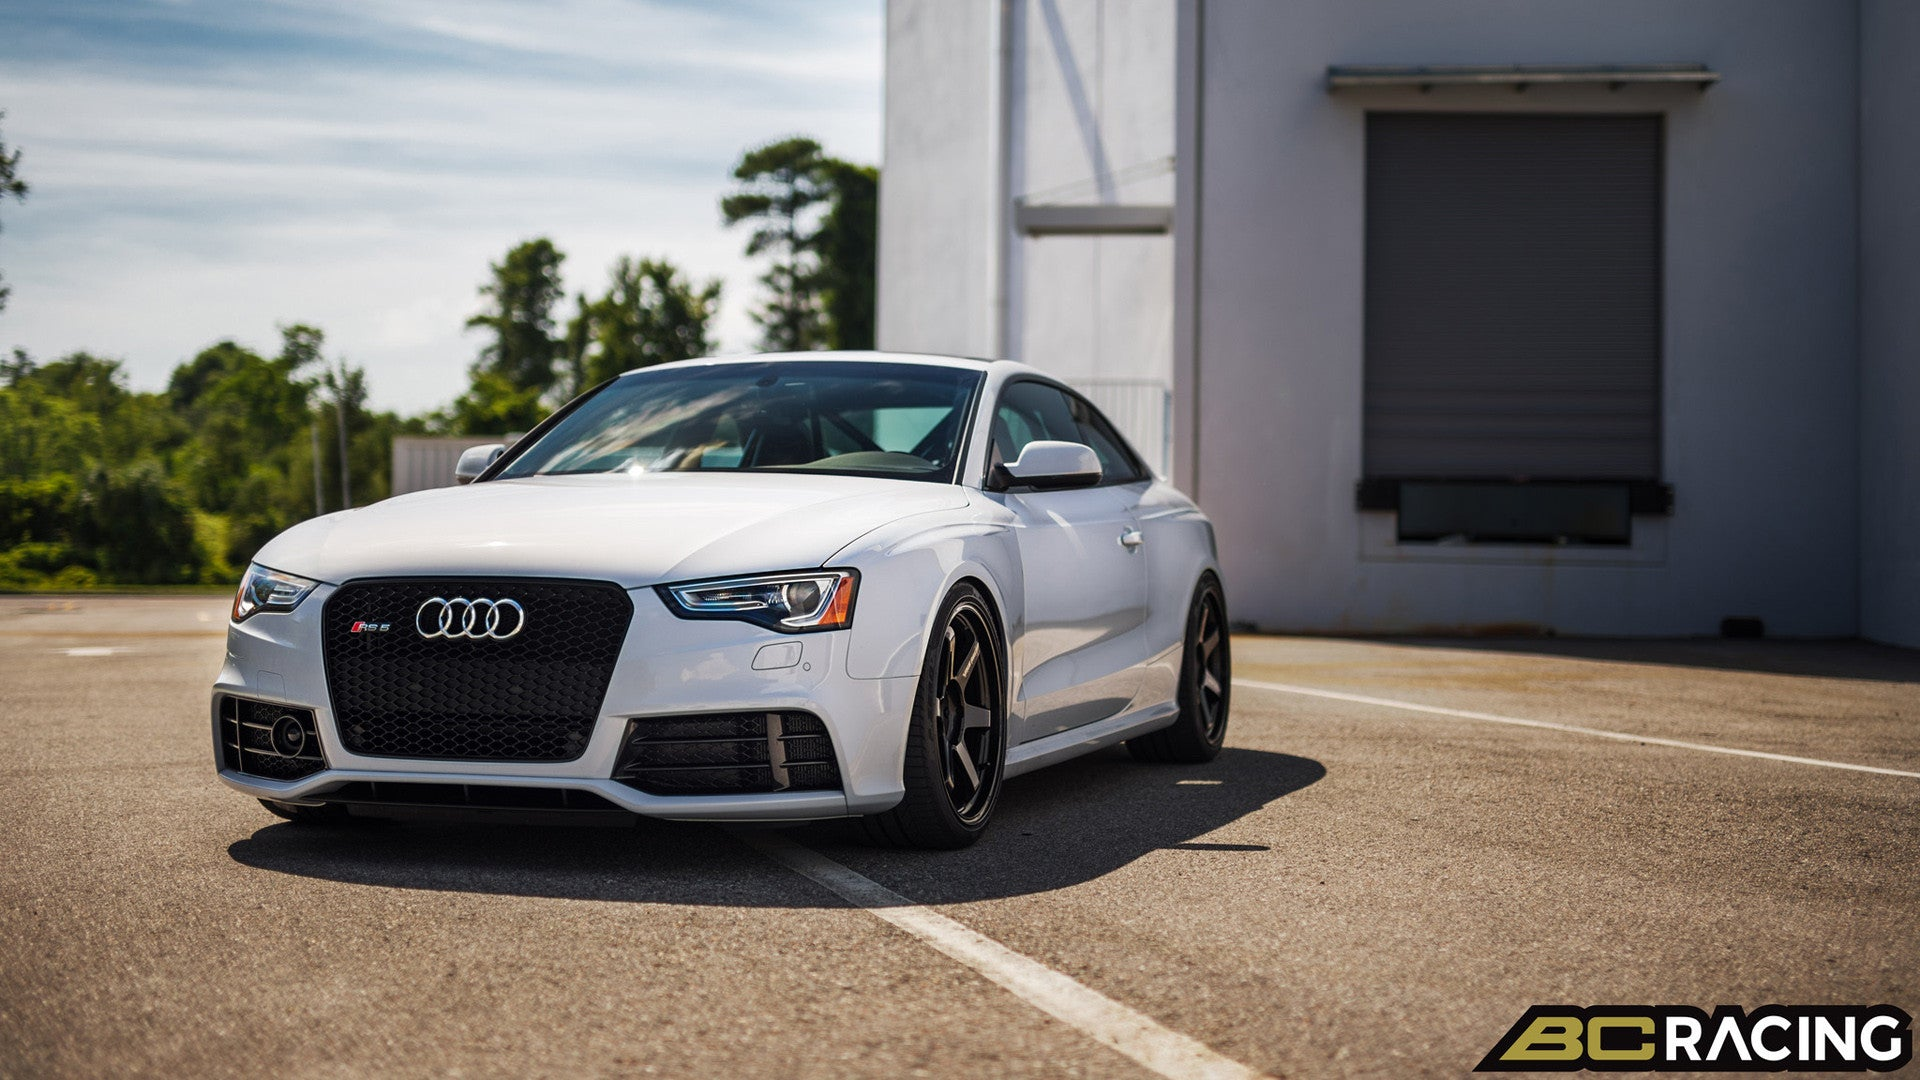 Audi BC Racing Coilovers